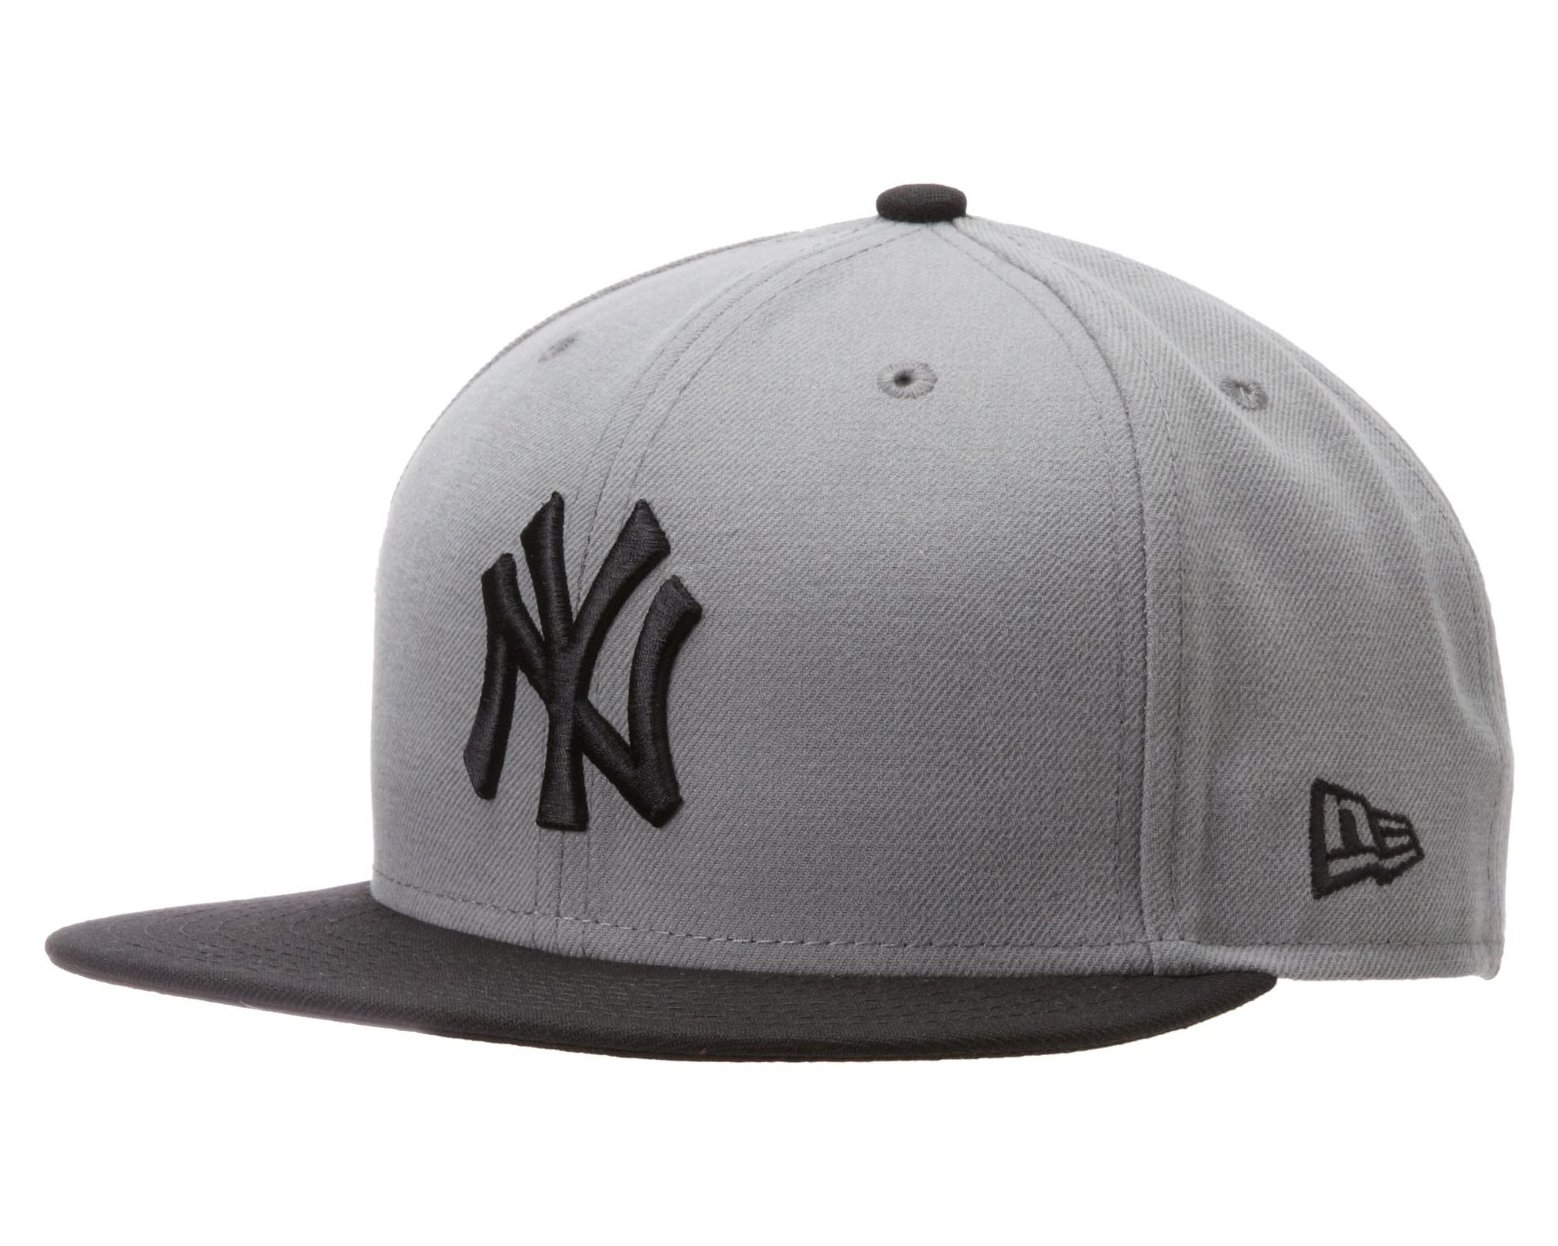 reputable site 9769b b95d1 Galleon - MLB New York Yankees MLB Basic Stm Gry 59Fifty, STORM GRAY BLACK,  7 1 2